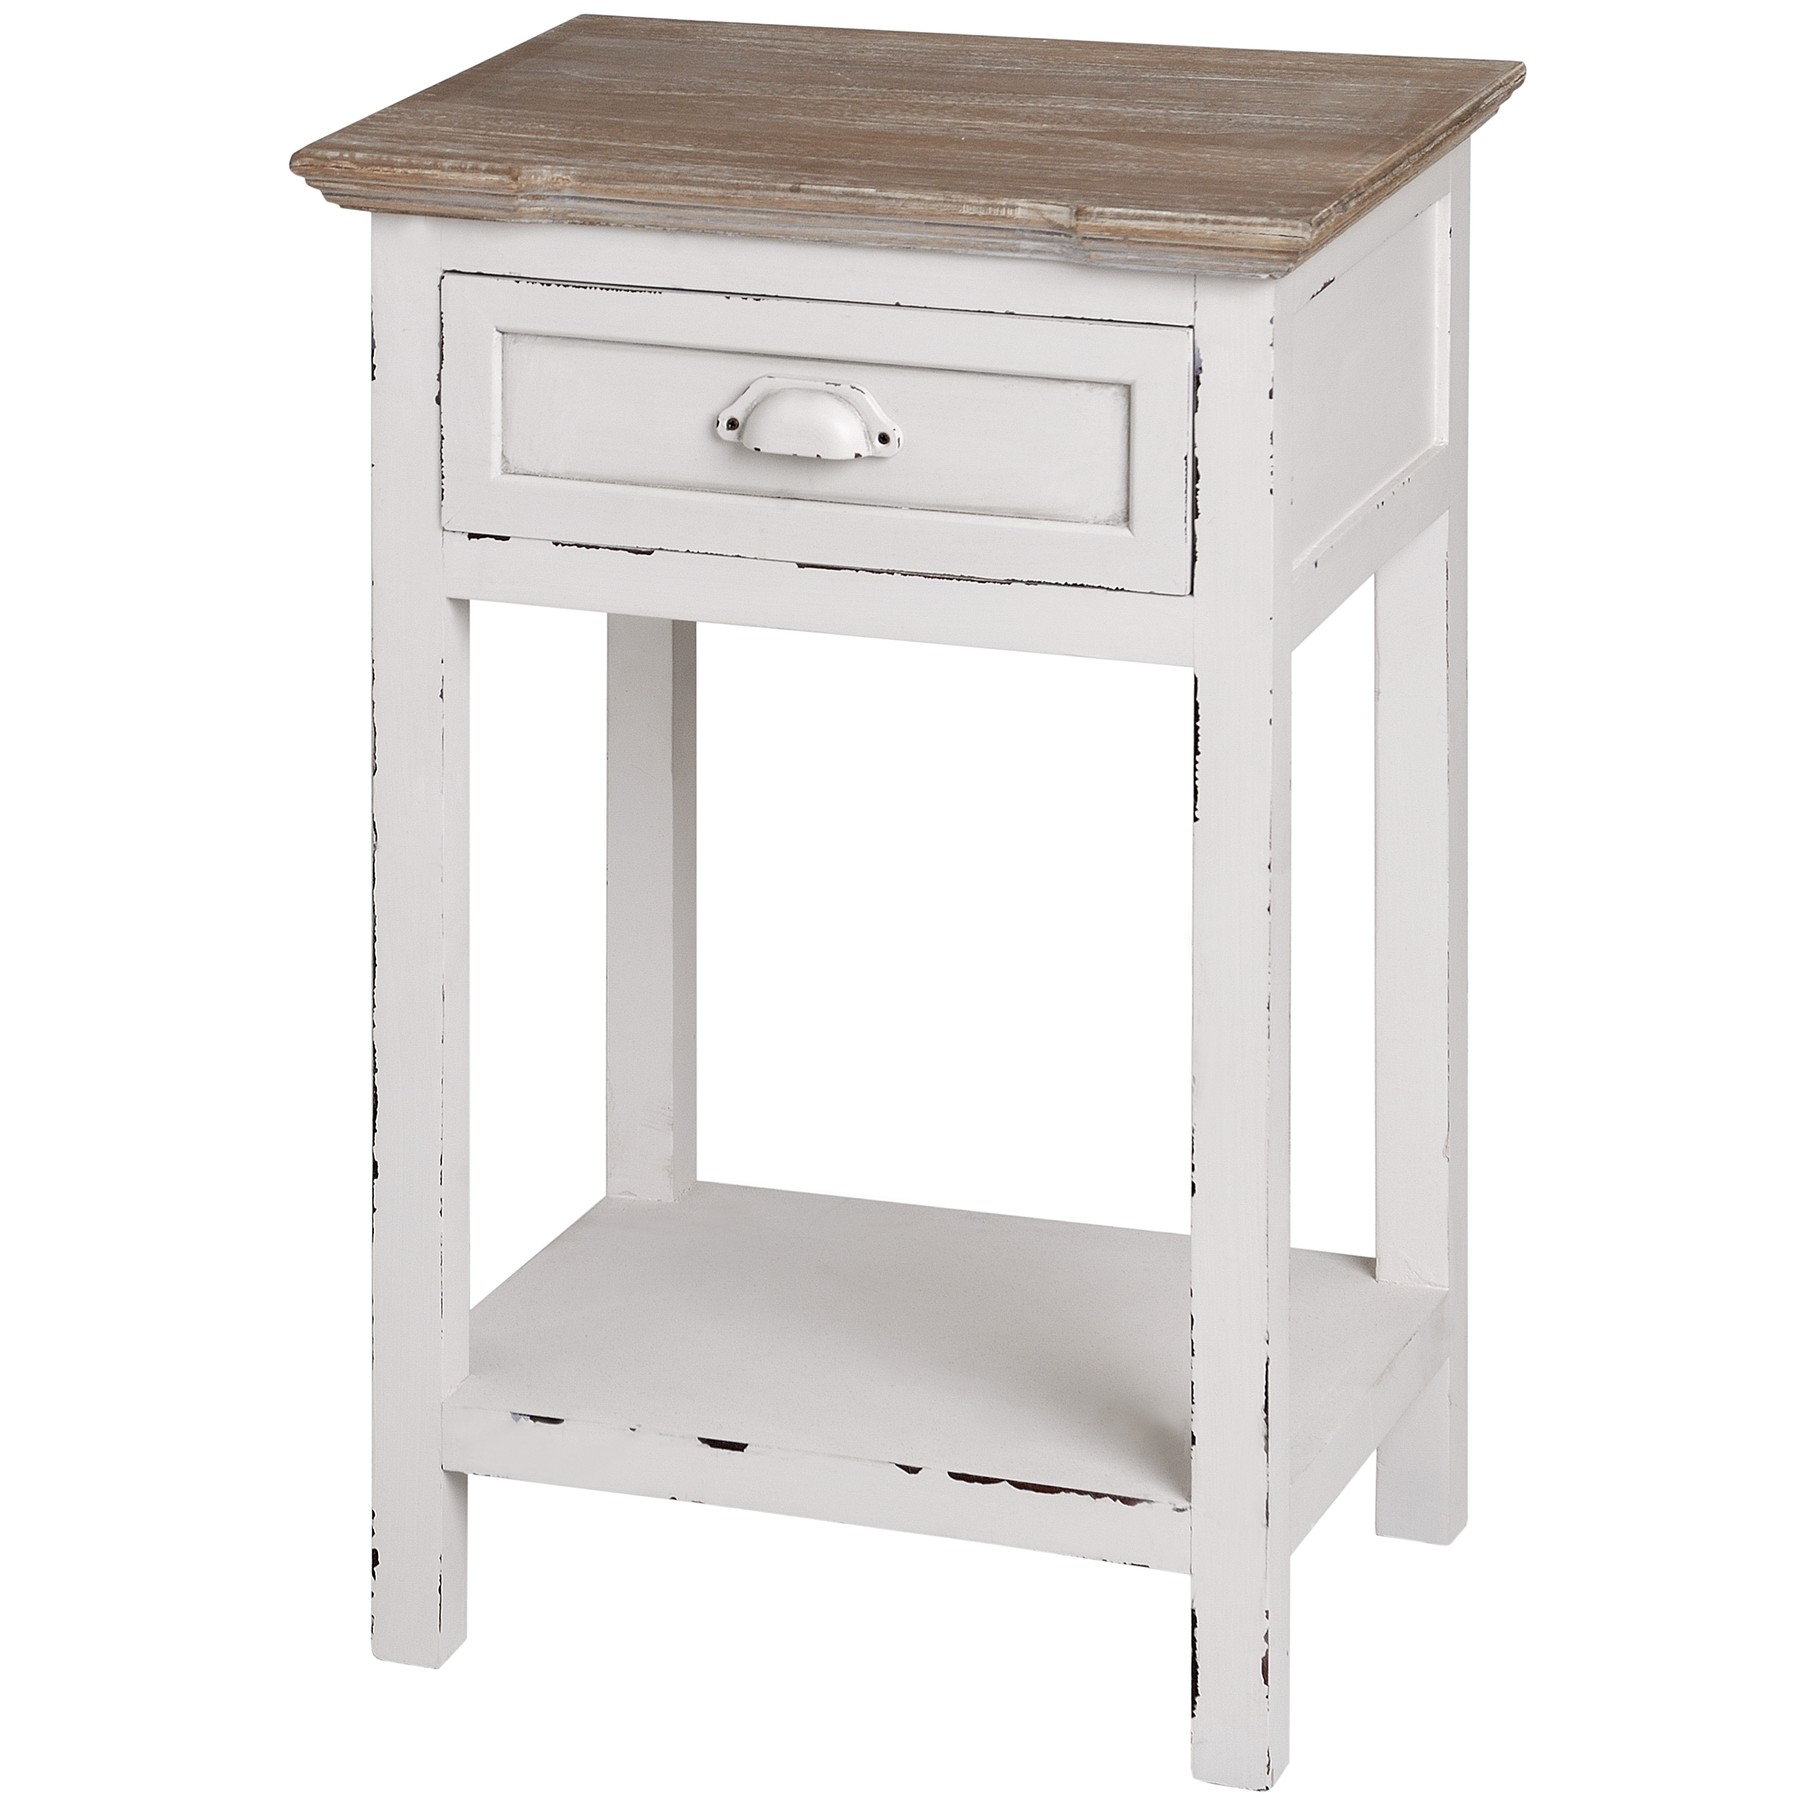 New England 1 Drawer Bedside Table Assembled Shabby Chic Cream Bedside Cabinet